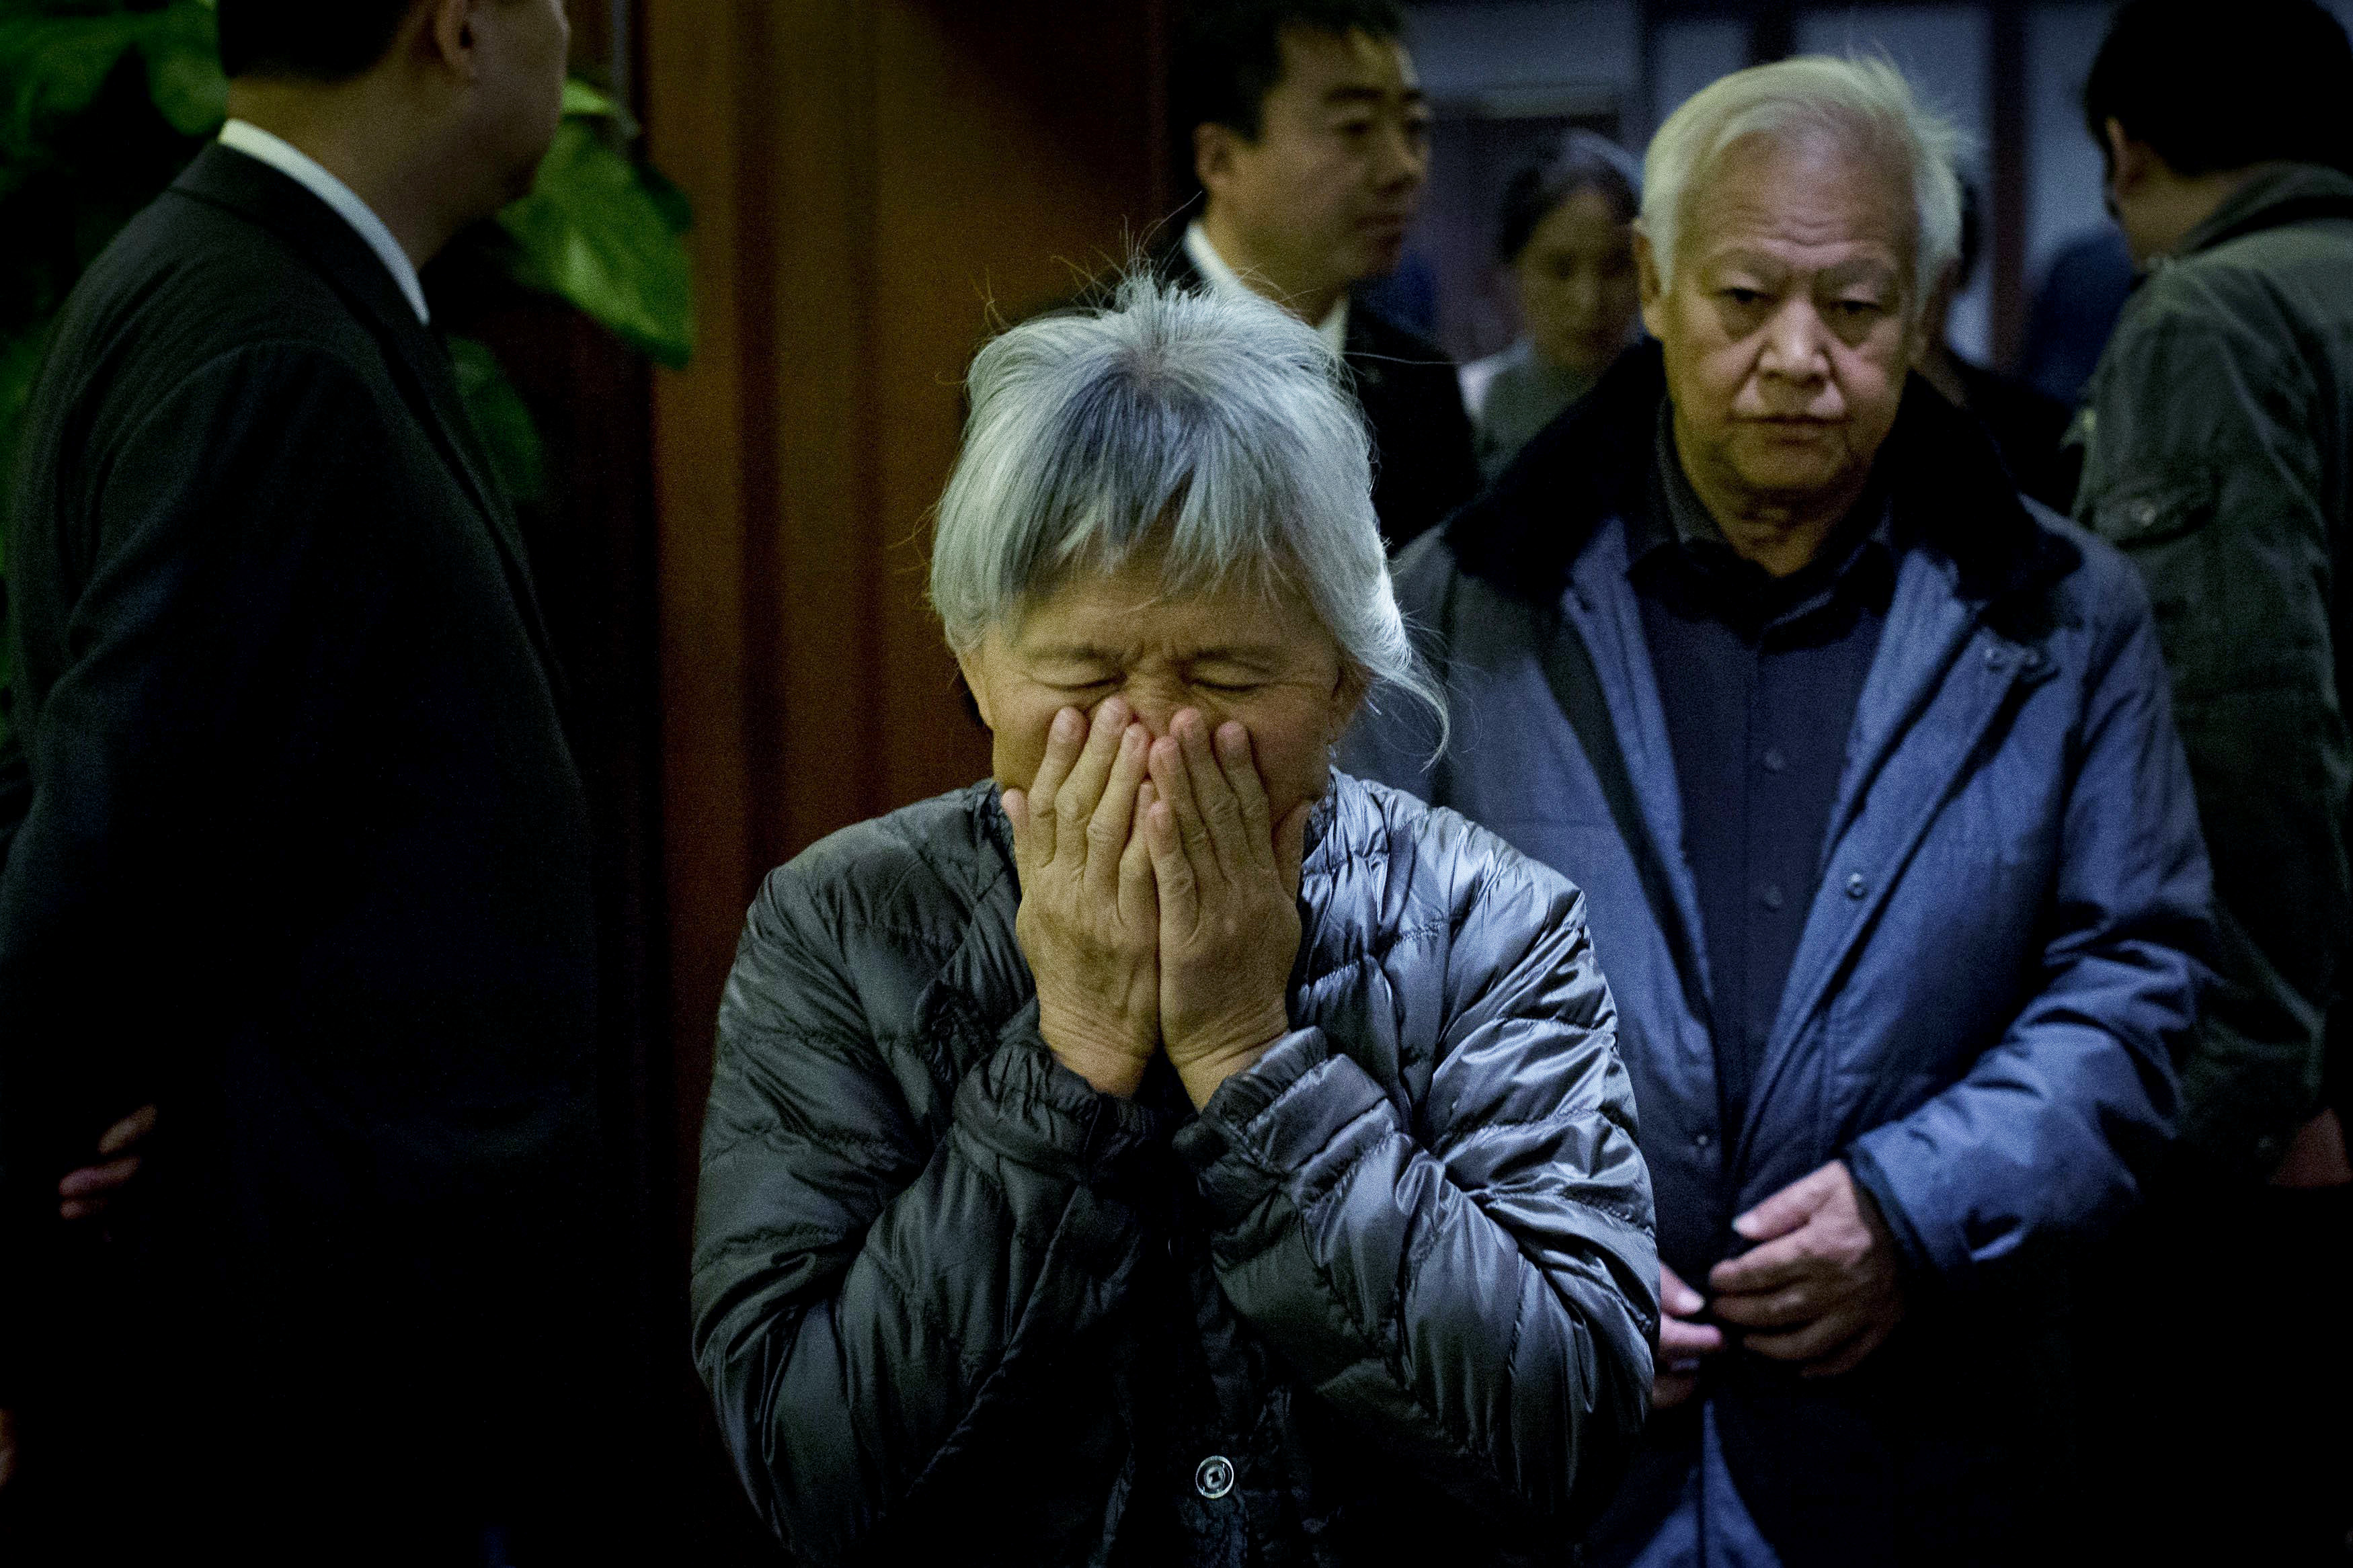 An elderly woman, one of the relatives of Chinese passengers aboard missing Malaysia Airlines Flight MH370, covers her face out of frustration as she leaves a hotel ballroom after a daily briefing meeting with managers of Malaysia Airlines in Beijing, on March 19, 2014.